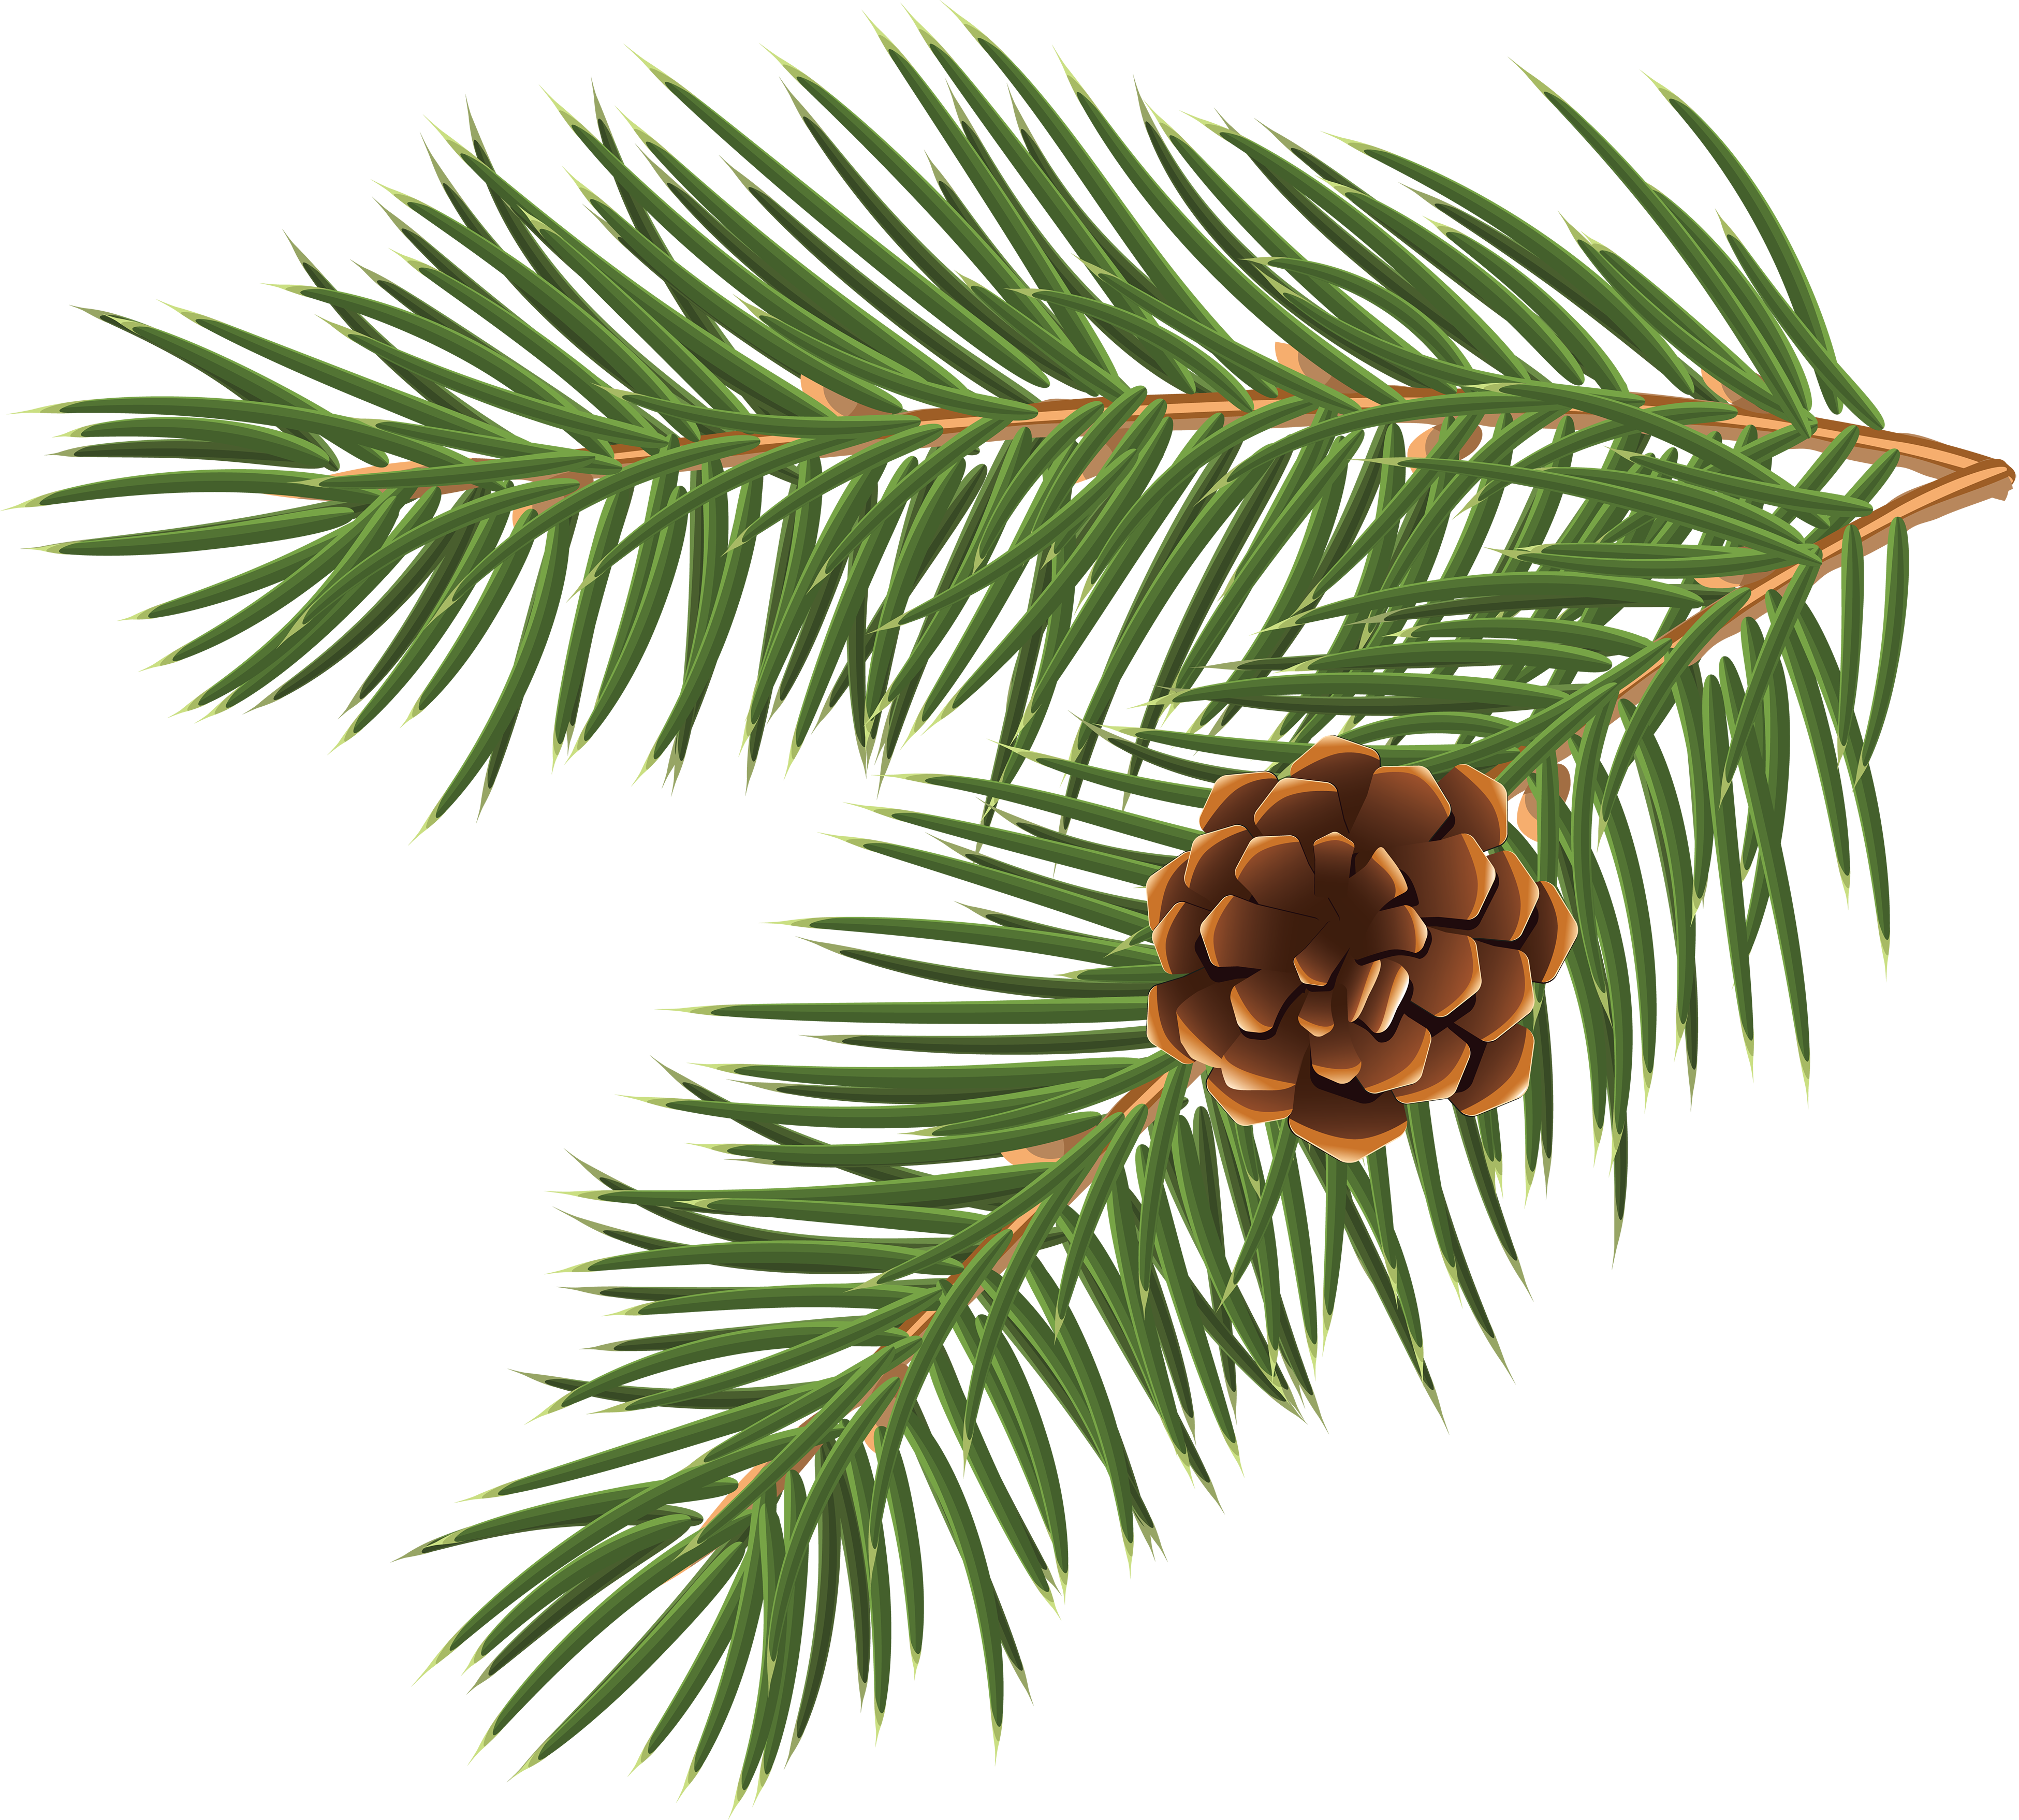 Loblolly pine tree branch clipart png free Pinus taeda Conifer cone Branch Tree Clip art - Pine cone material ... png free